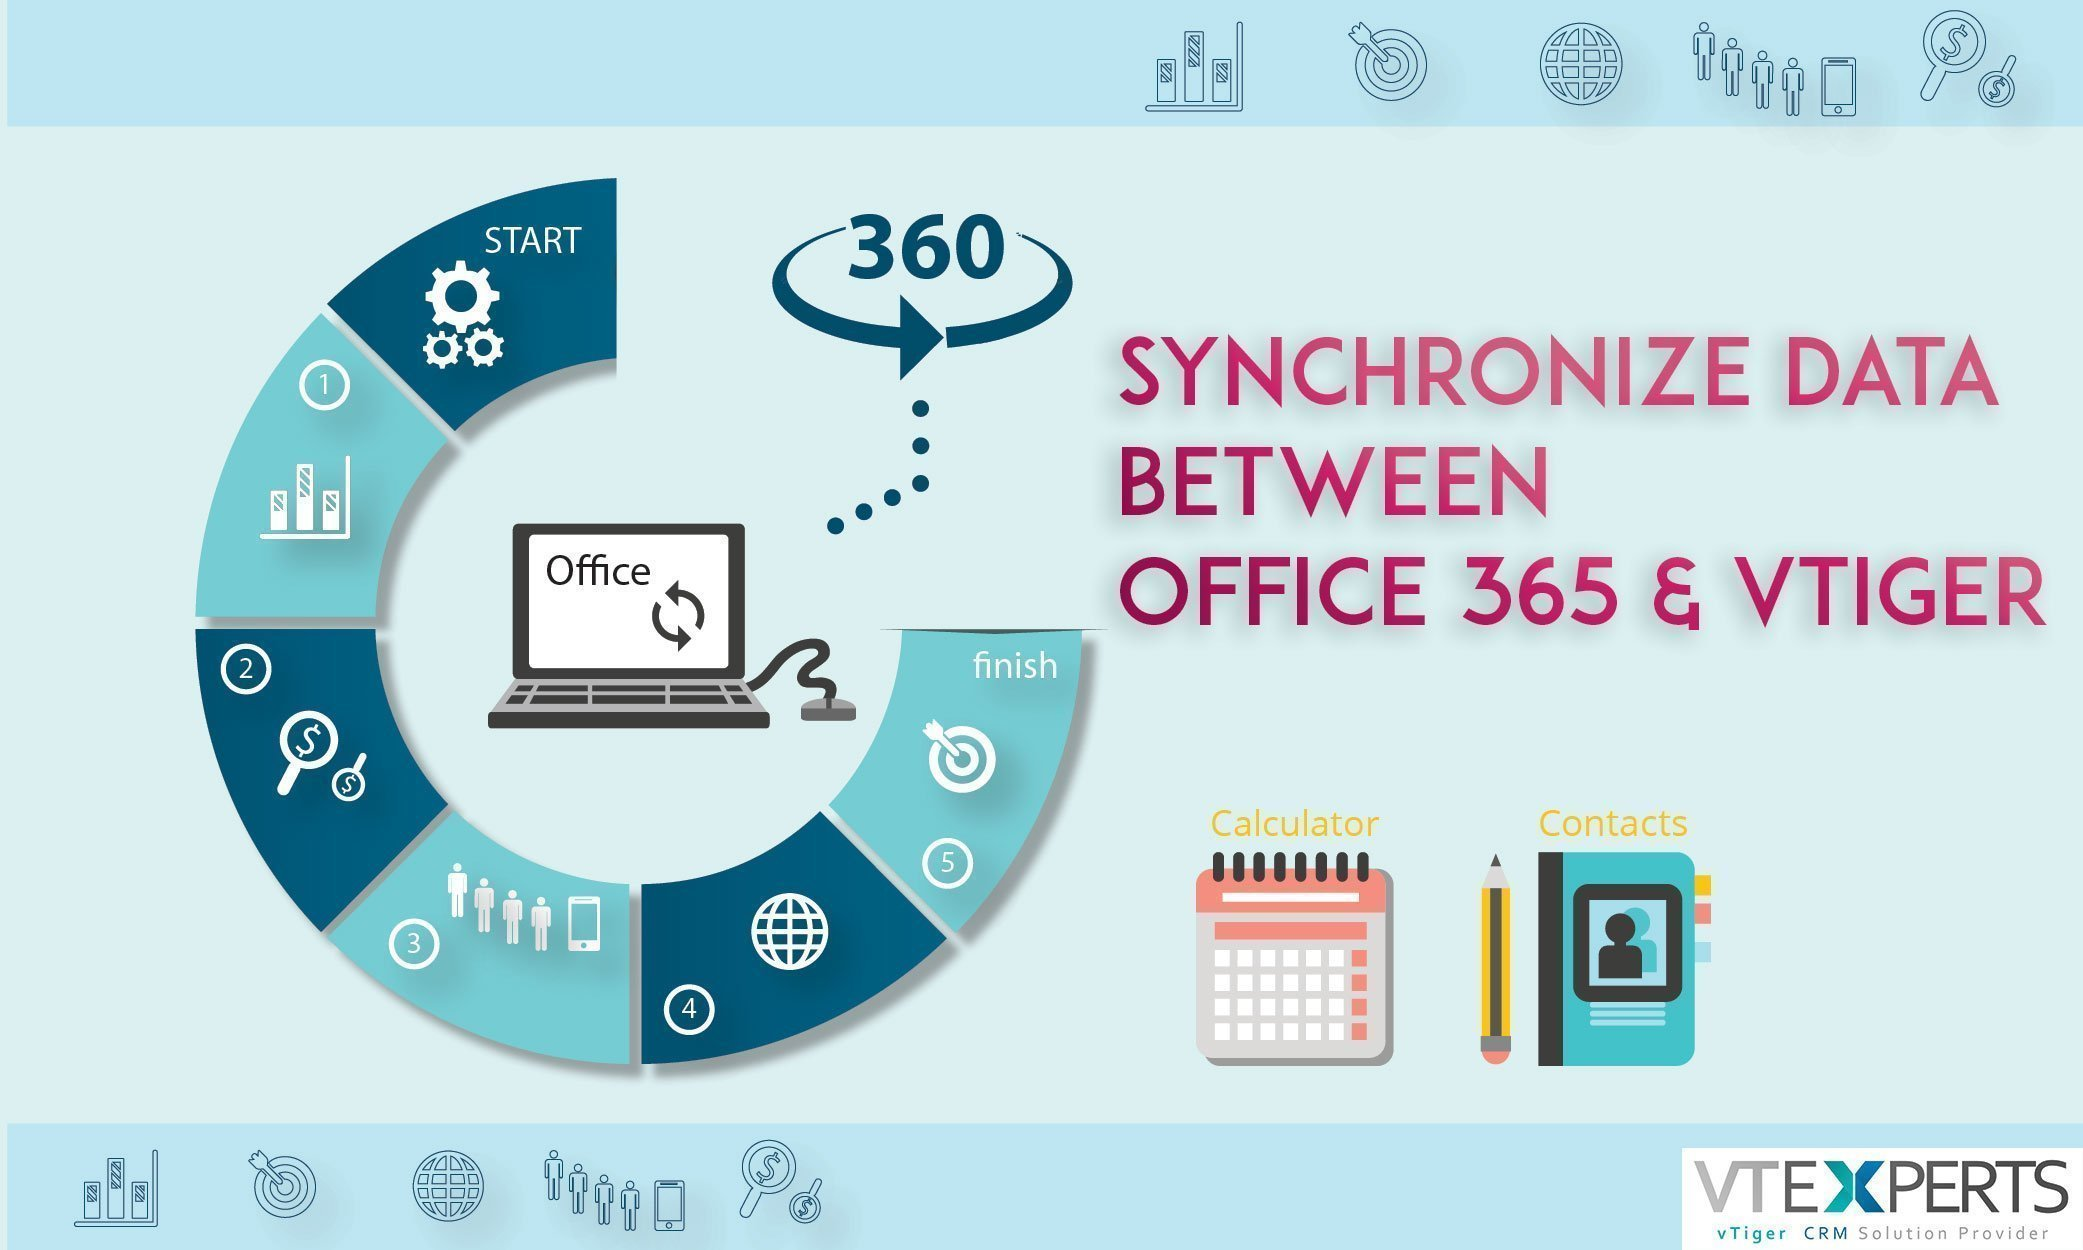 Integrating Office 365 With VTiger For Data Synchronization